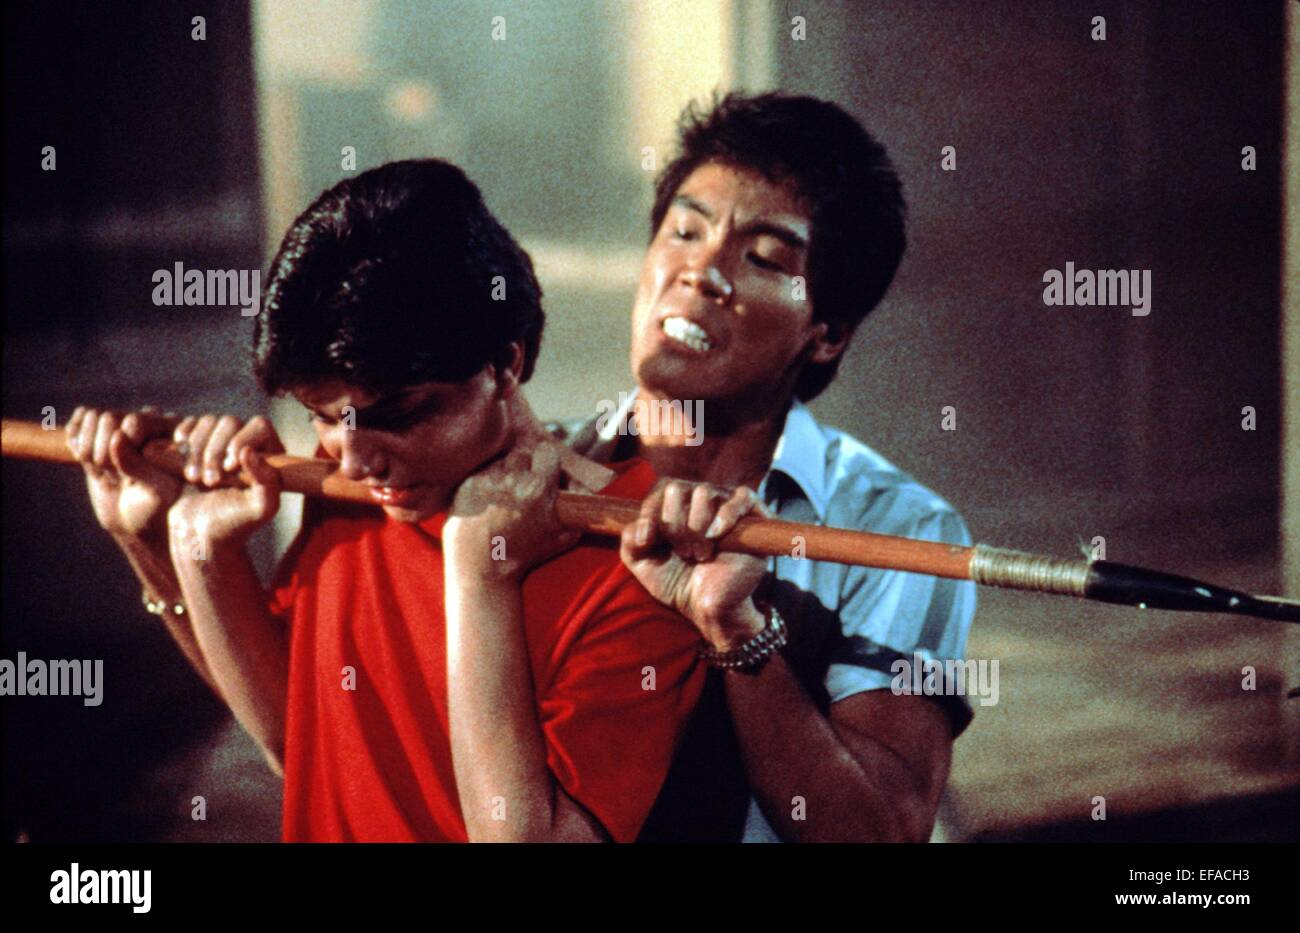 RALPH MACCHIO & YUJI OKUMOTO THE KARATE KID PART II; THE ... Yuji Okumoto Family